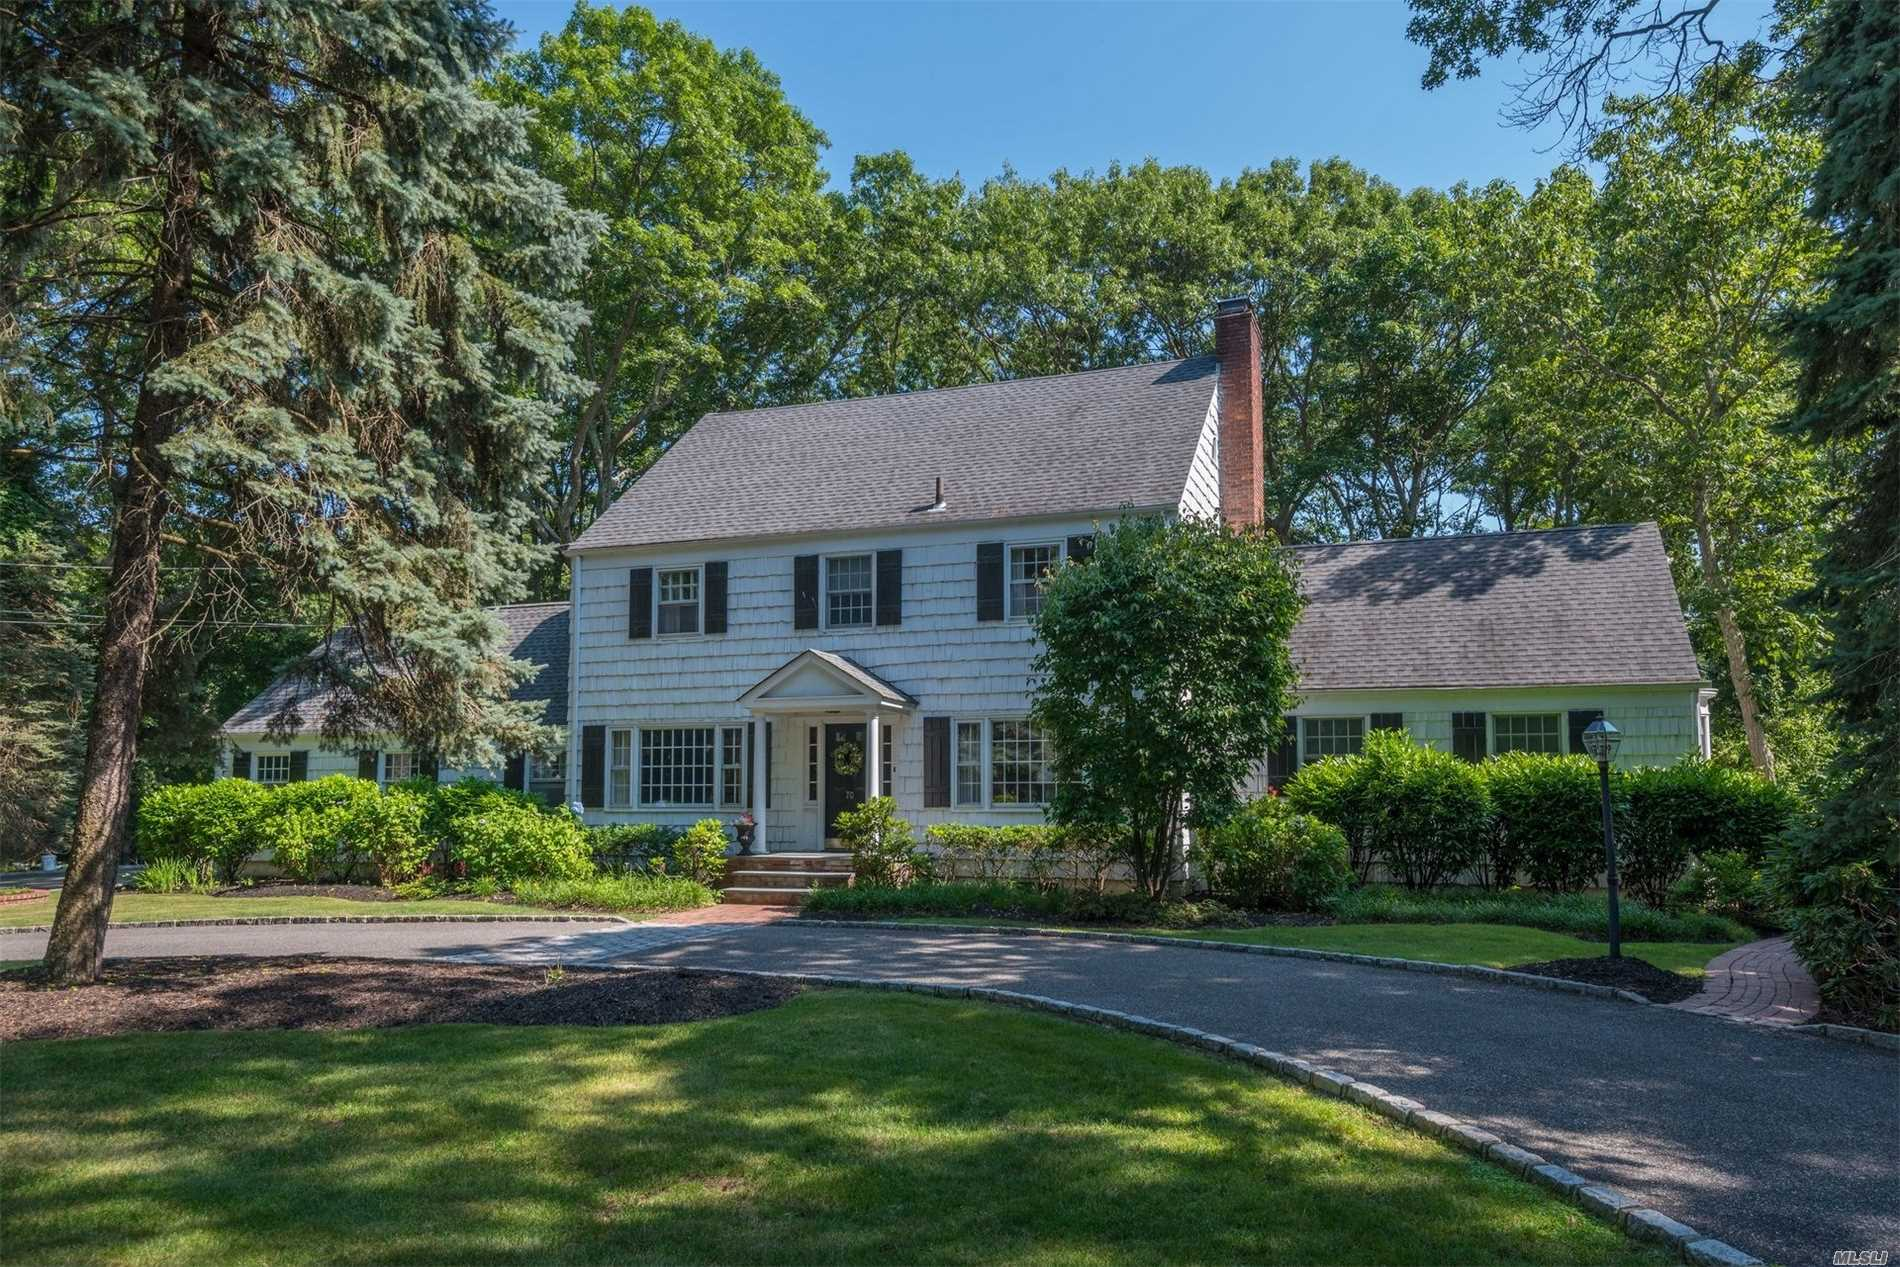 Photo of home for sale at 70 West Meadow Rd, Setauket NY